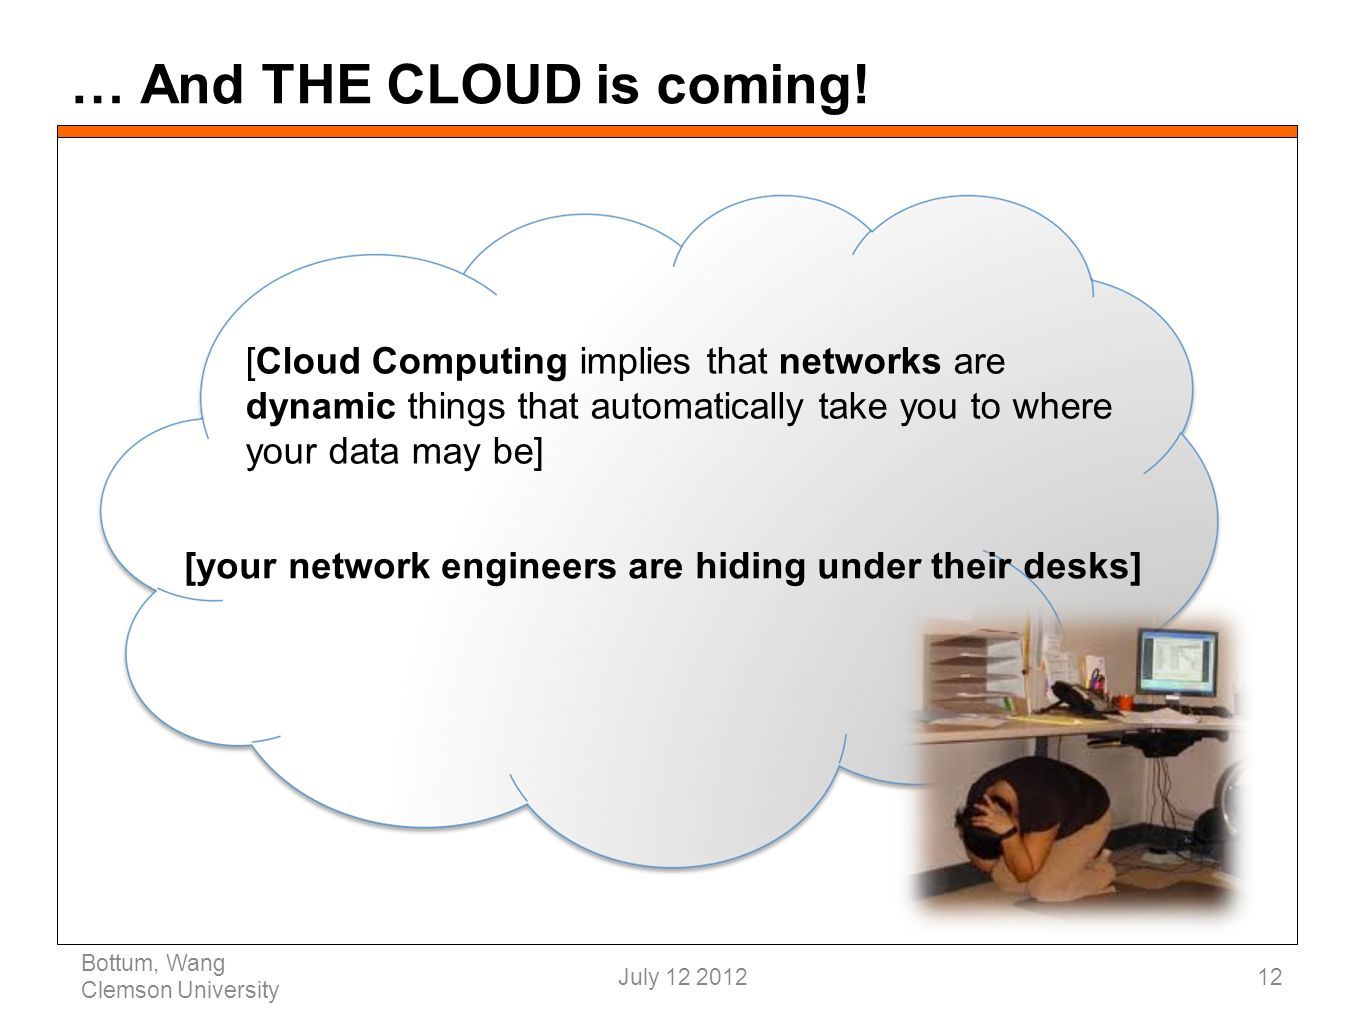 … And THE CLOUD is coming.